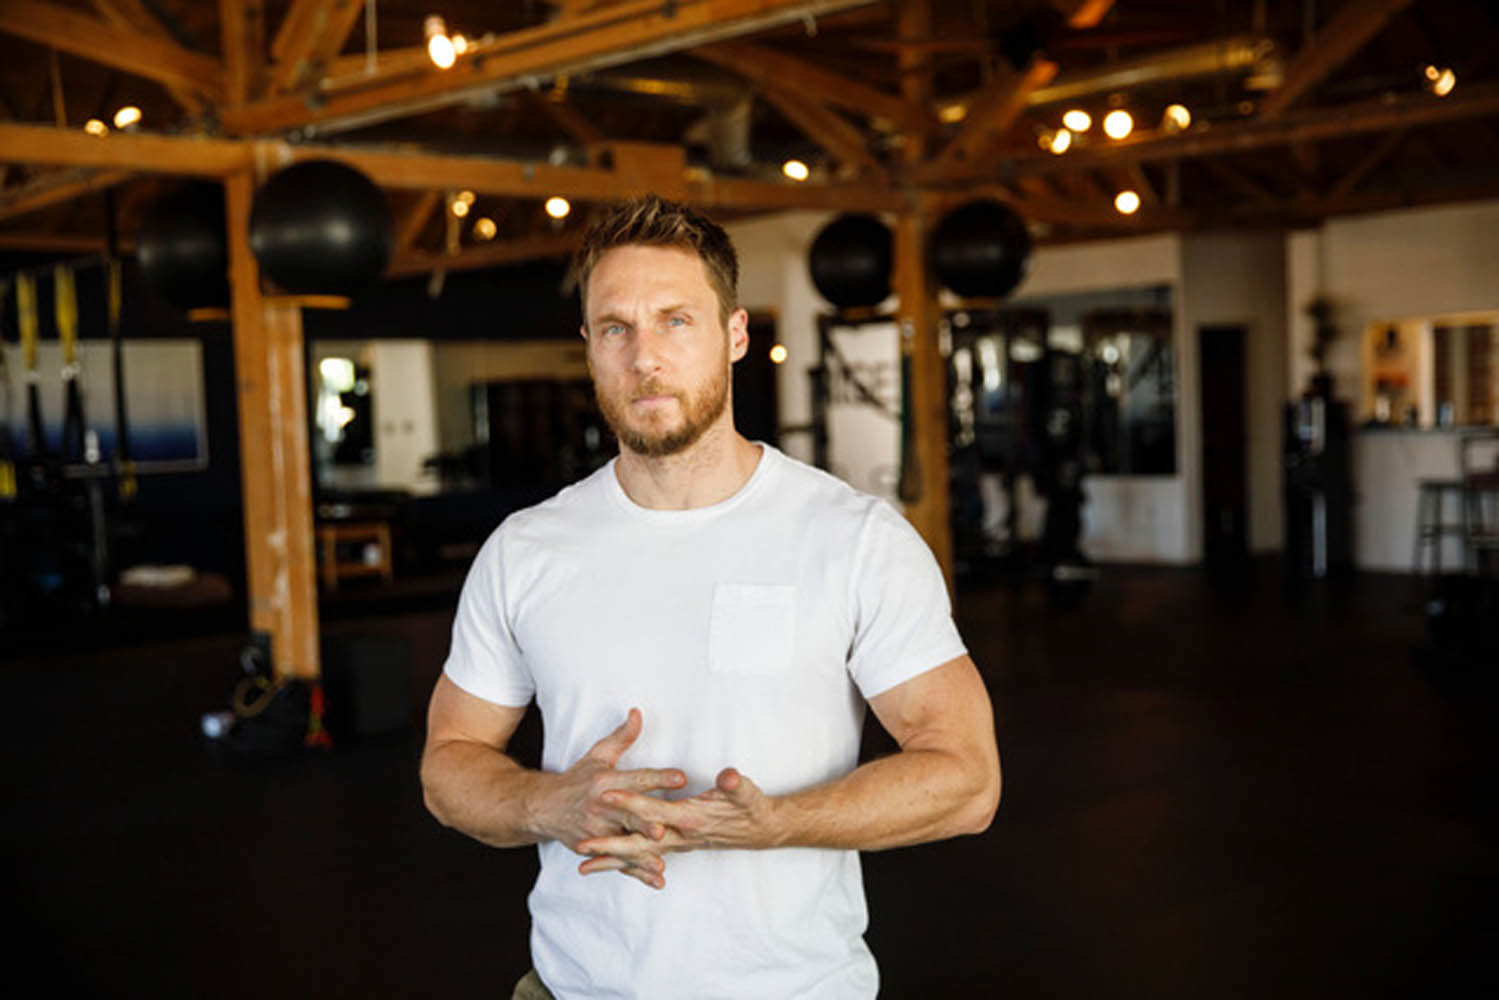 Springfield native Jason Walsh is a personal trainer to Hollywood stars, including Matt Damon, Jennifer Aniston and Brie Larson.